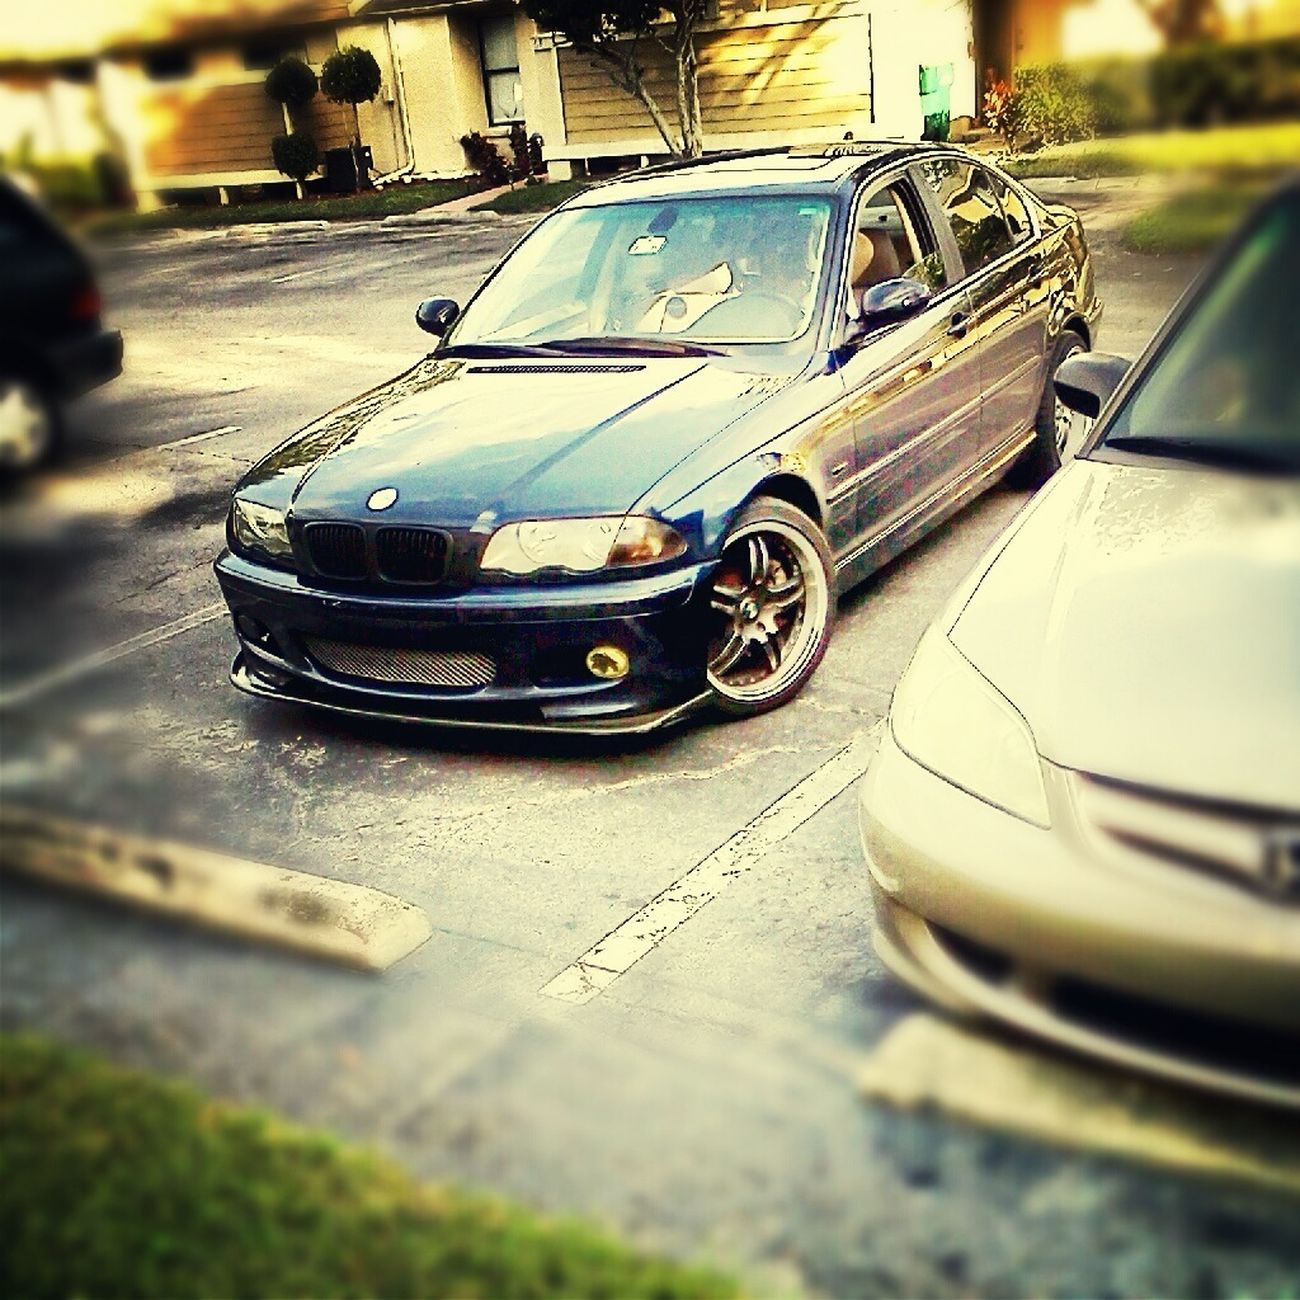 Meet the hoe my BMW